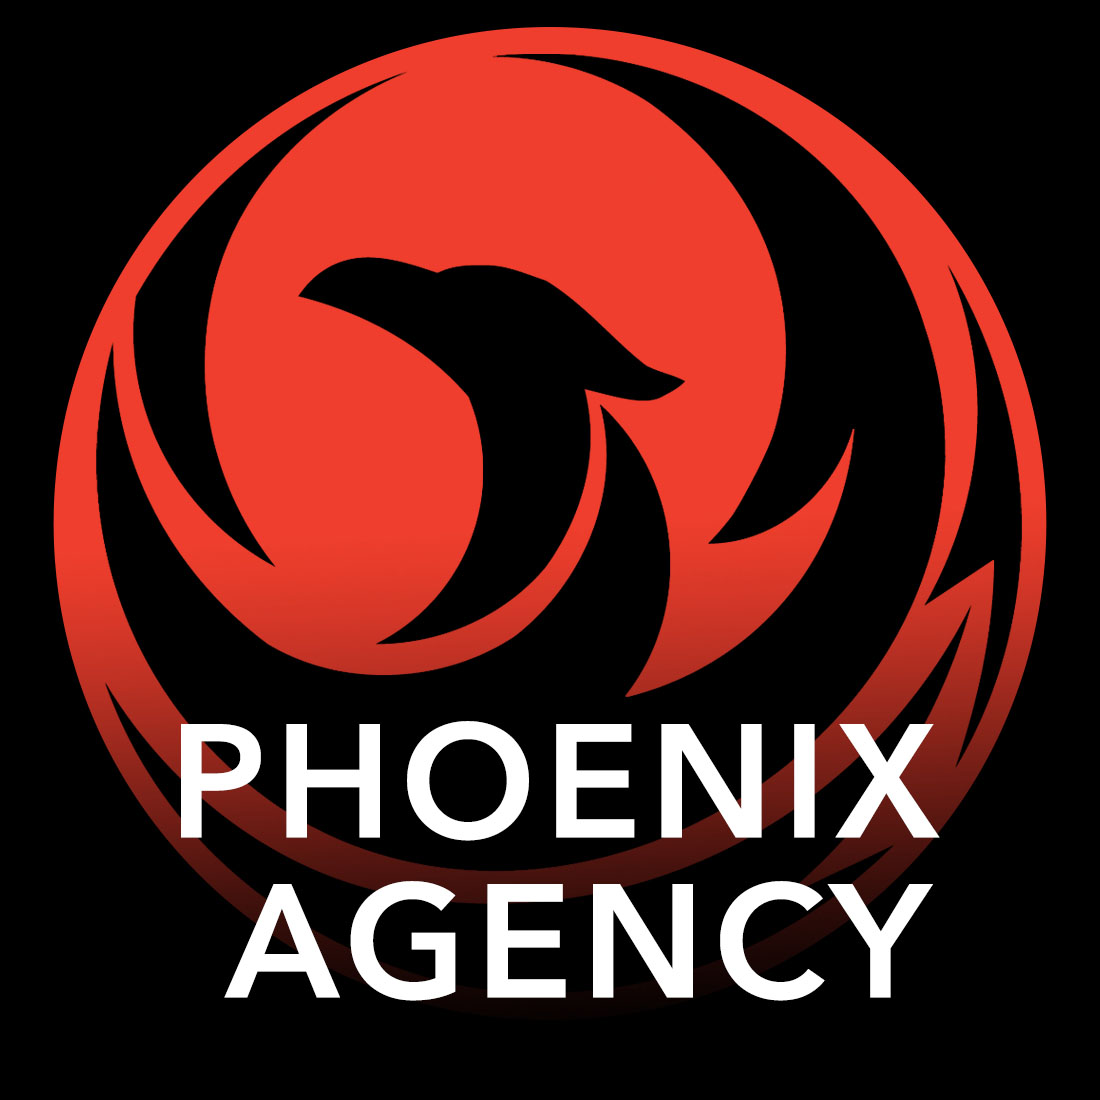 Do you know all The Phoenix Agency books are now available EVERYWHERE?